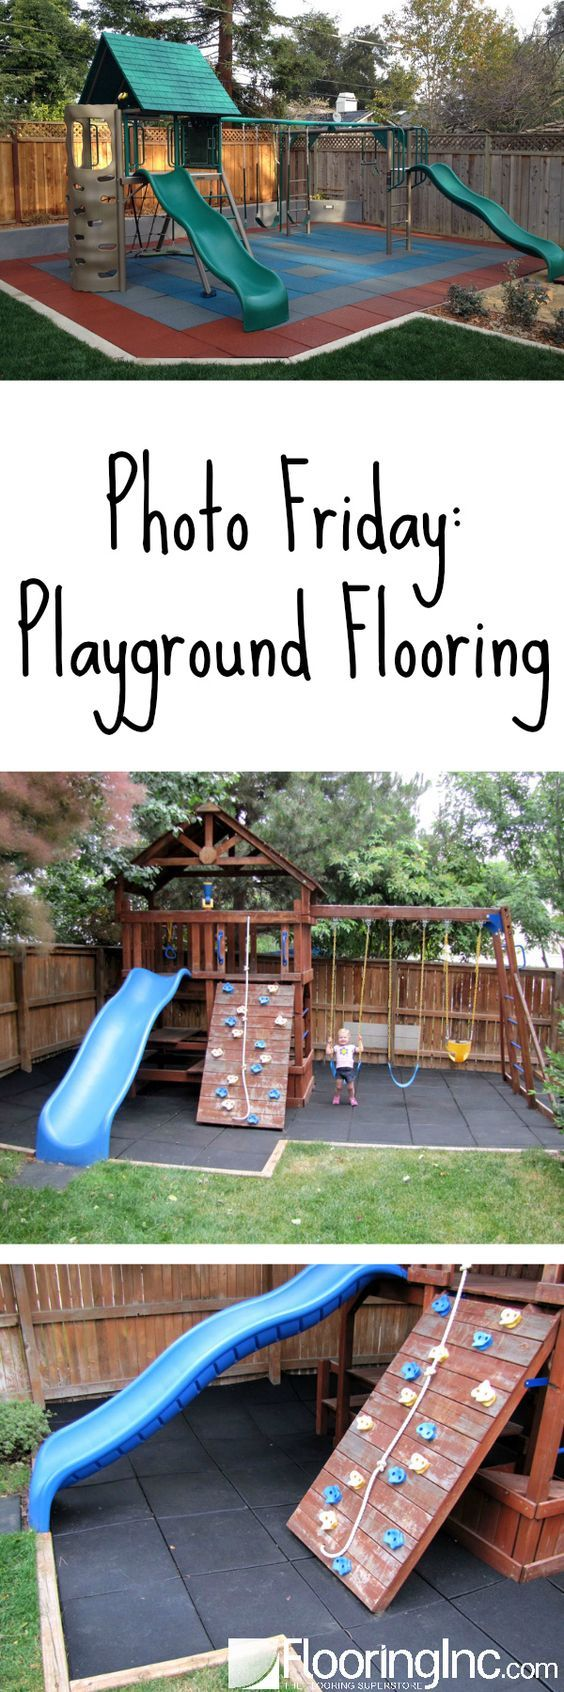 Photo Friday: Playground flooring in action! Thinking about creating a home playground? Here's your inspiration!